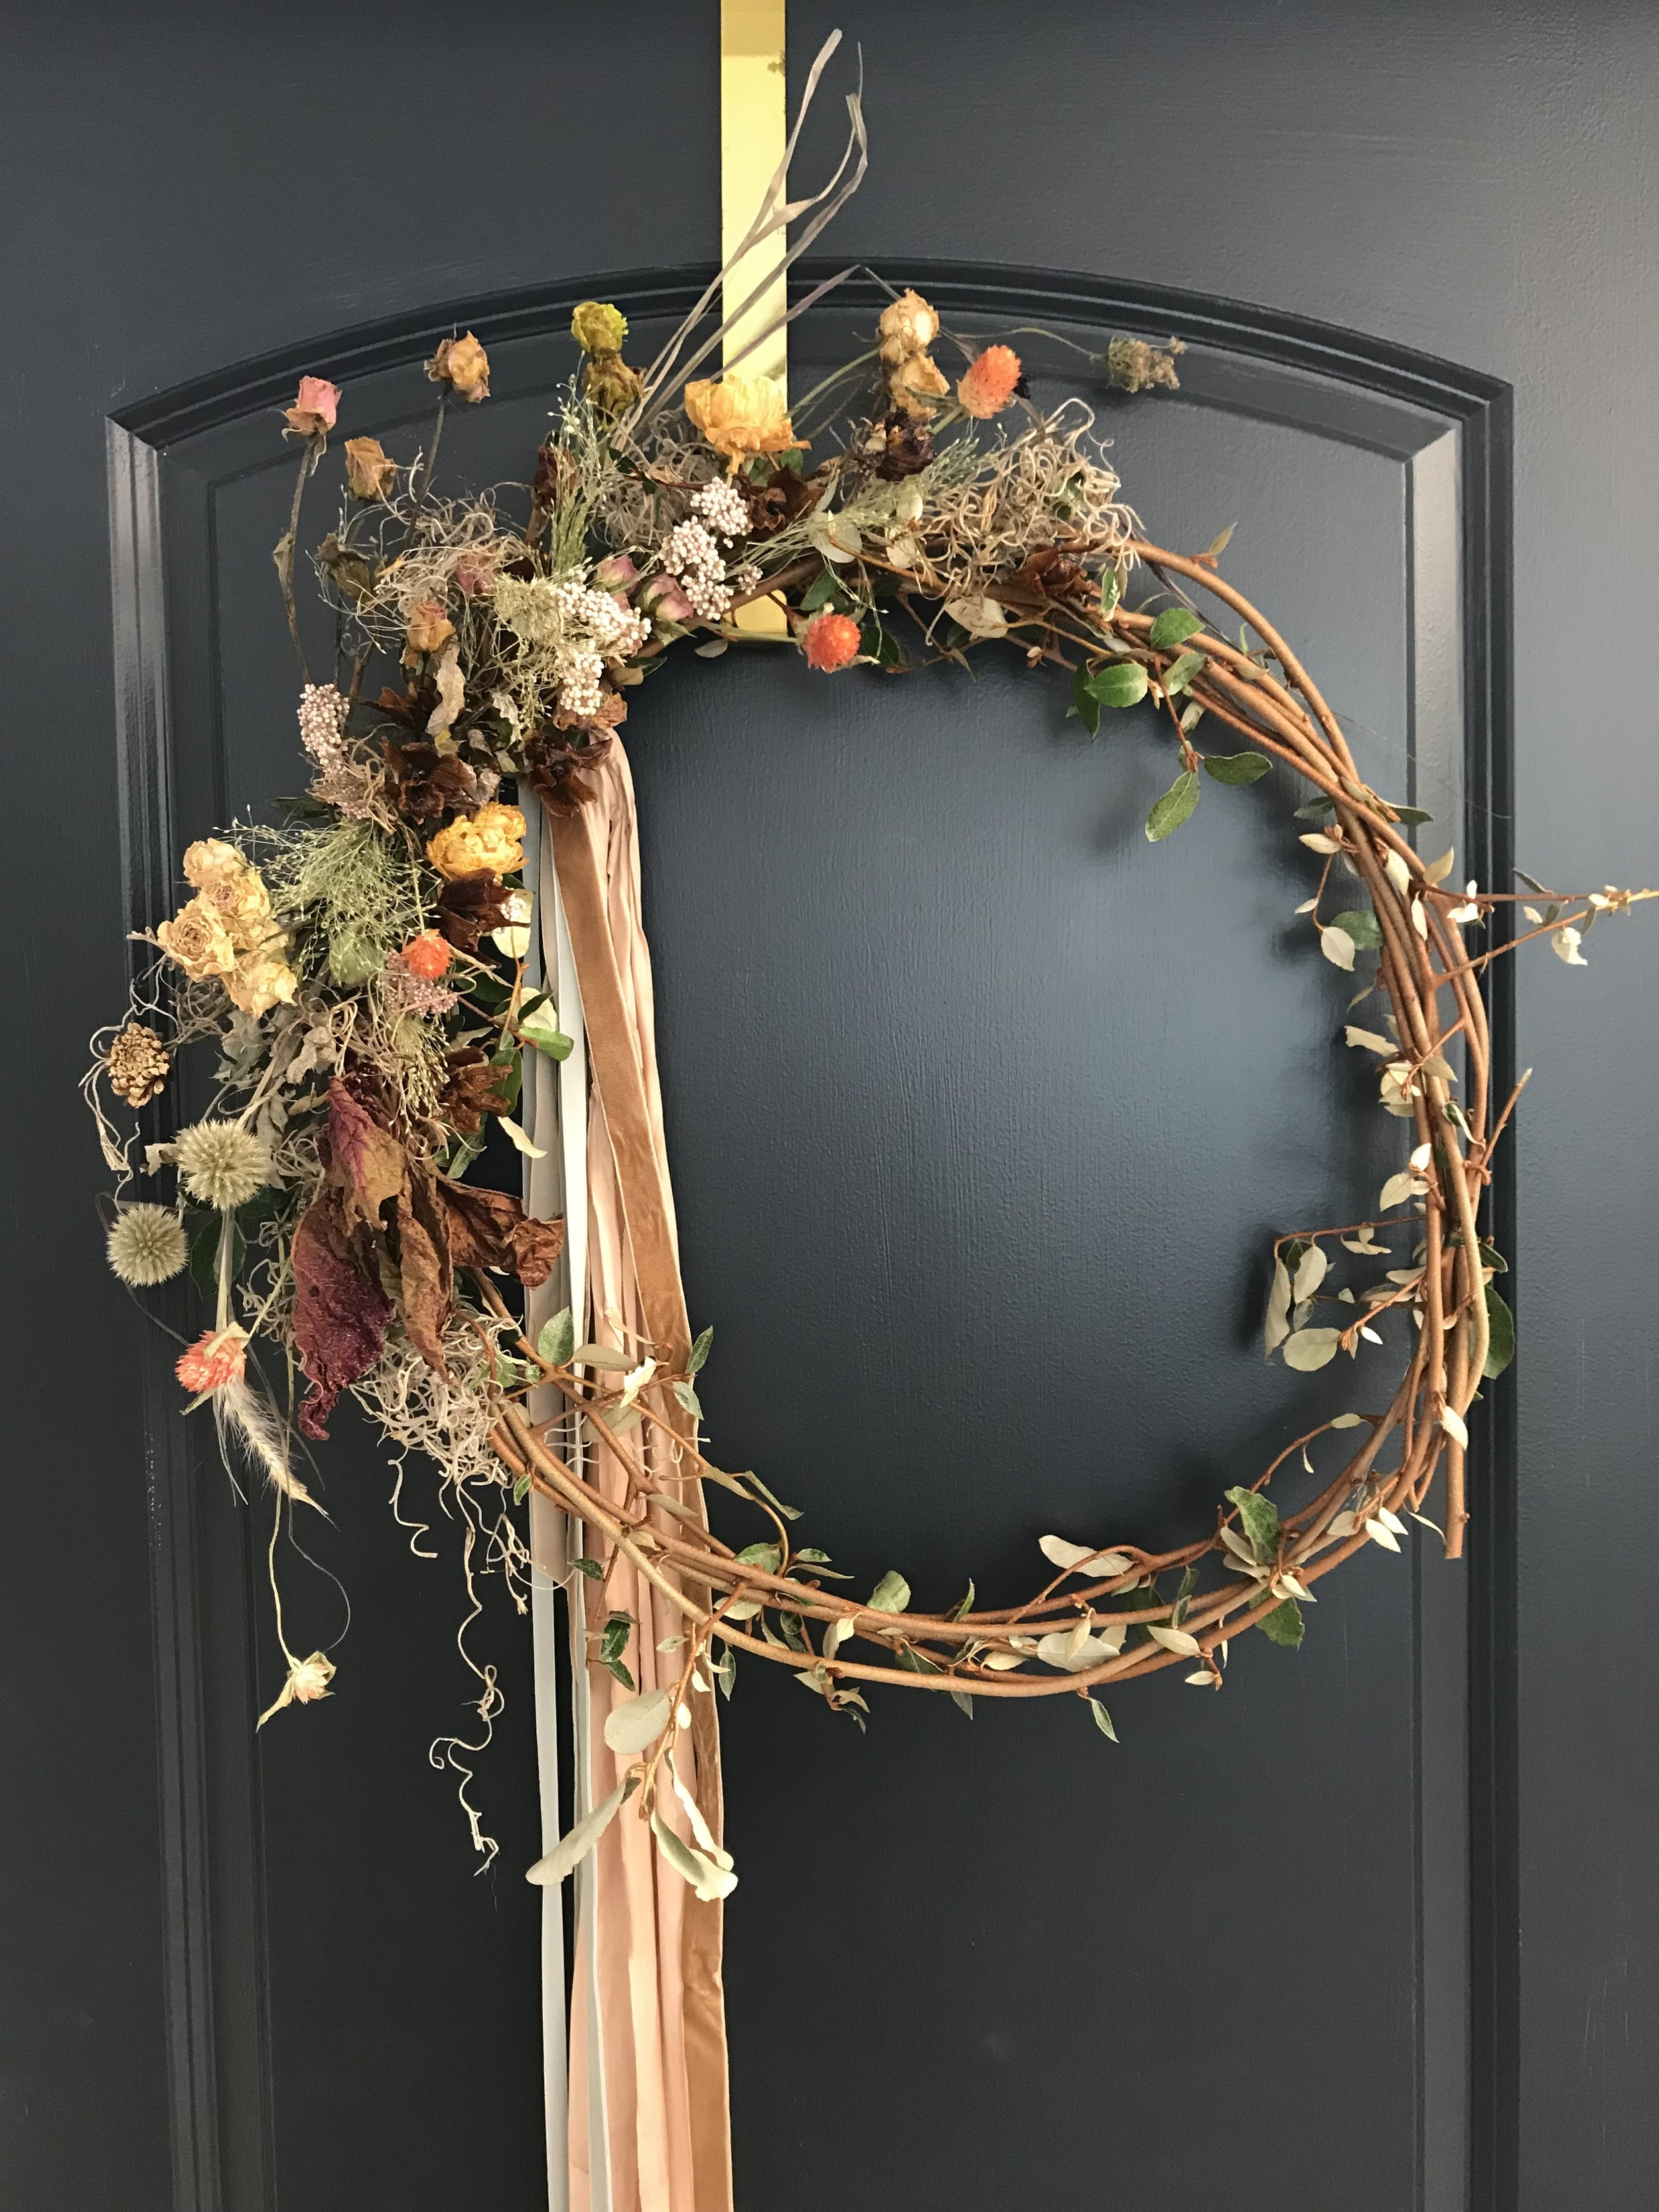 The new way to preserve your bouquet. Email  me  if you want a little decor for your front door!